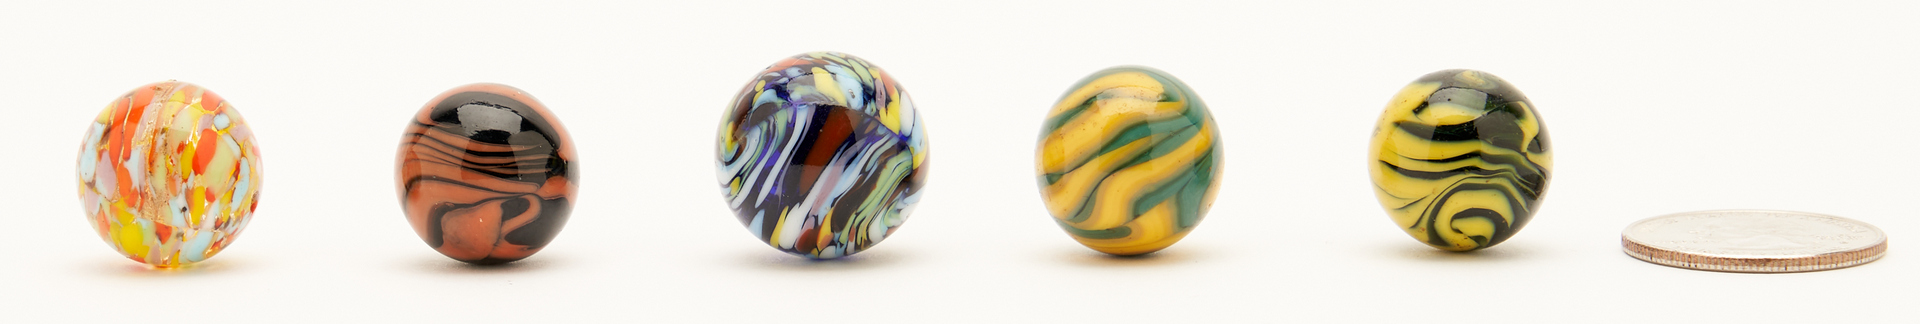 Lot 1063: 5 Christenson Agate Company Marbles, incl. Guinea Marbles